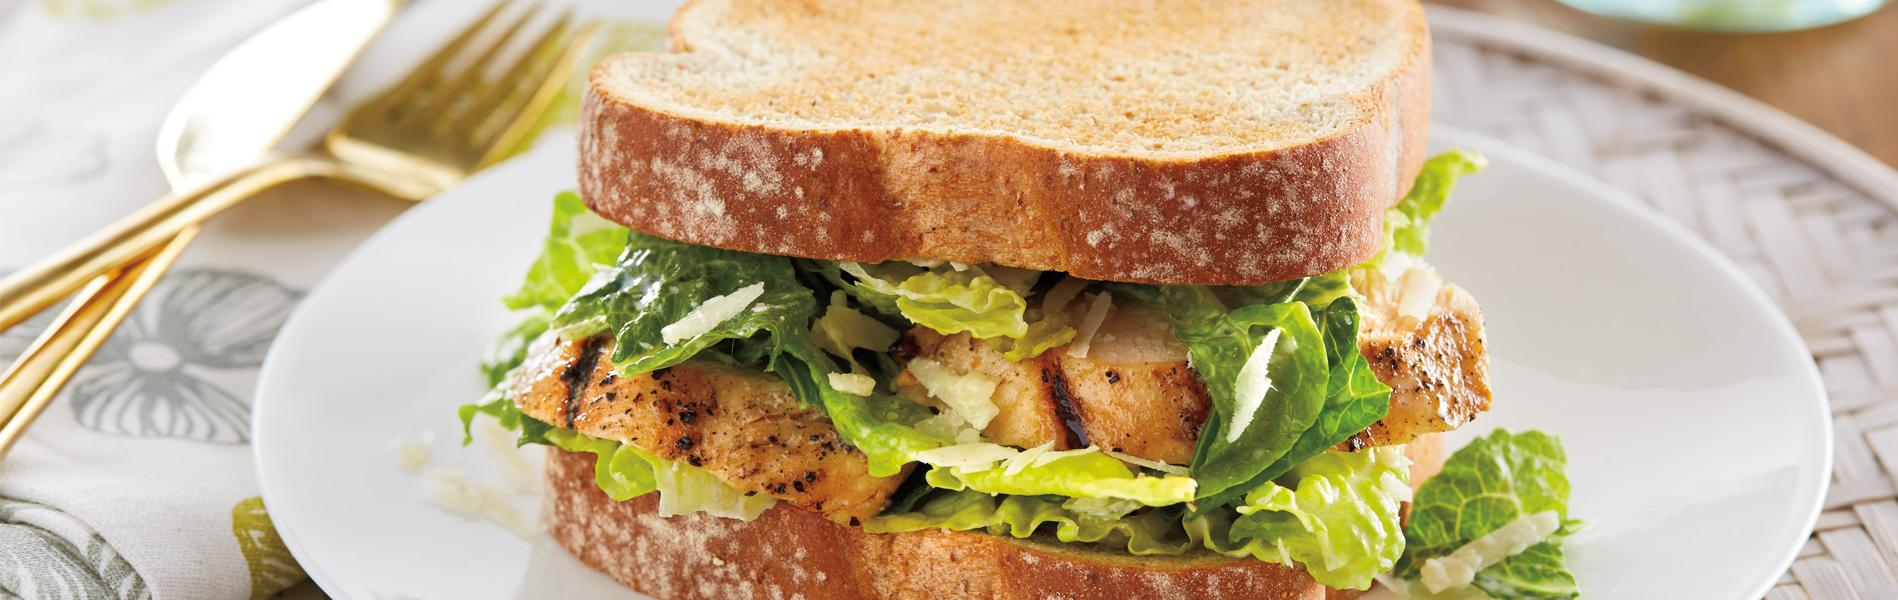 Caesar salad sandwich made with Artesano Golden Wheat Bread.